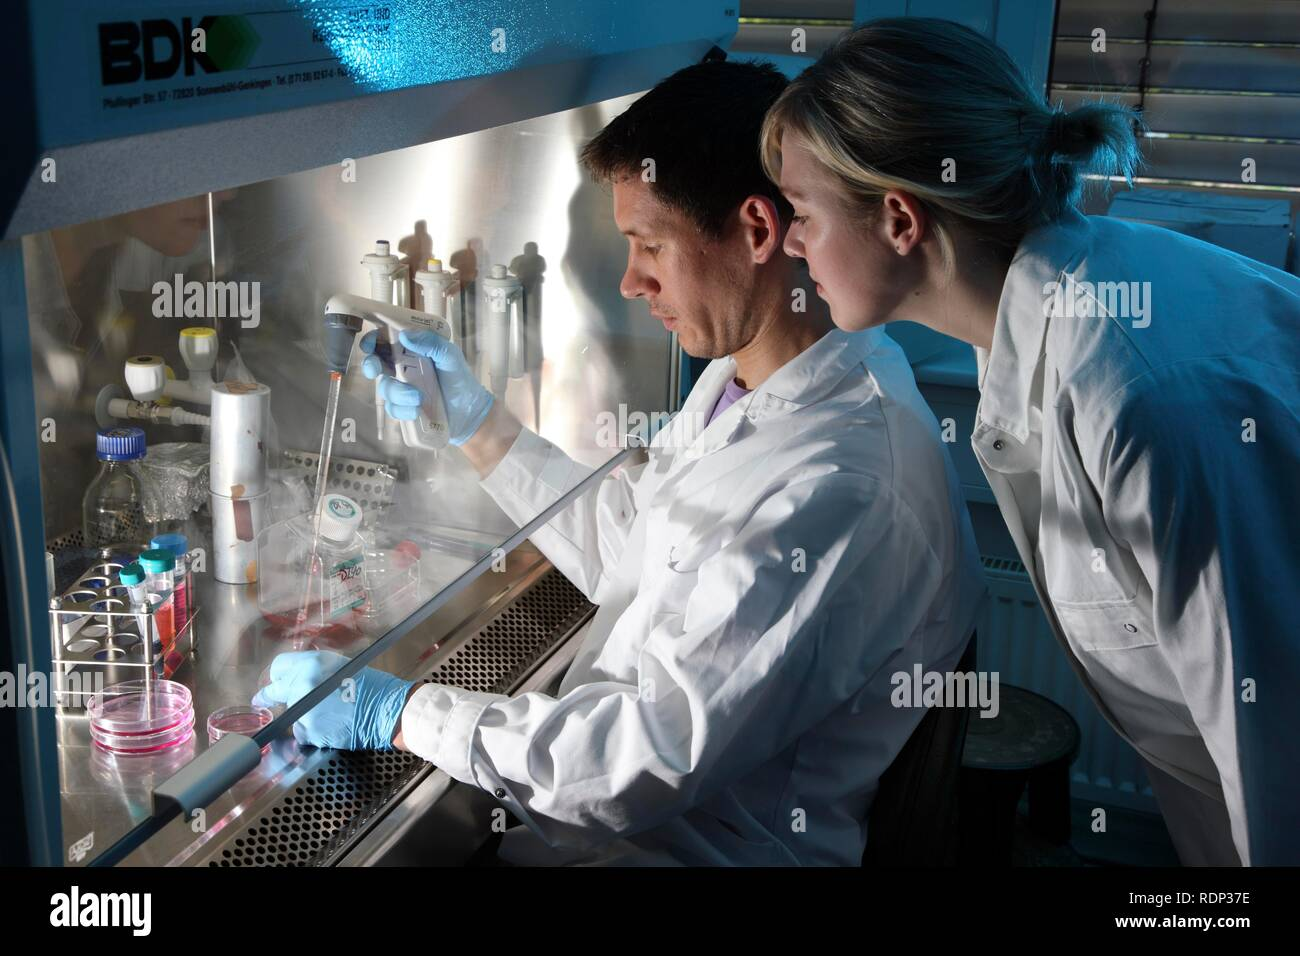 Biotechnology laboratory, laminar flow, a scientist is pipetting a cell culture medium into a petri dish, Centre for Medical Stock Photo